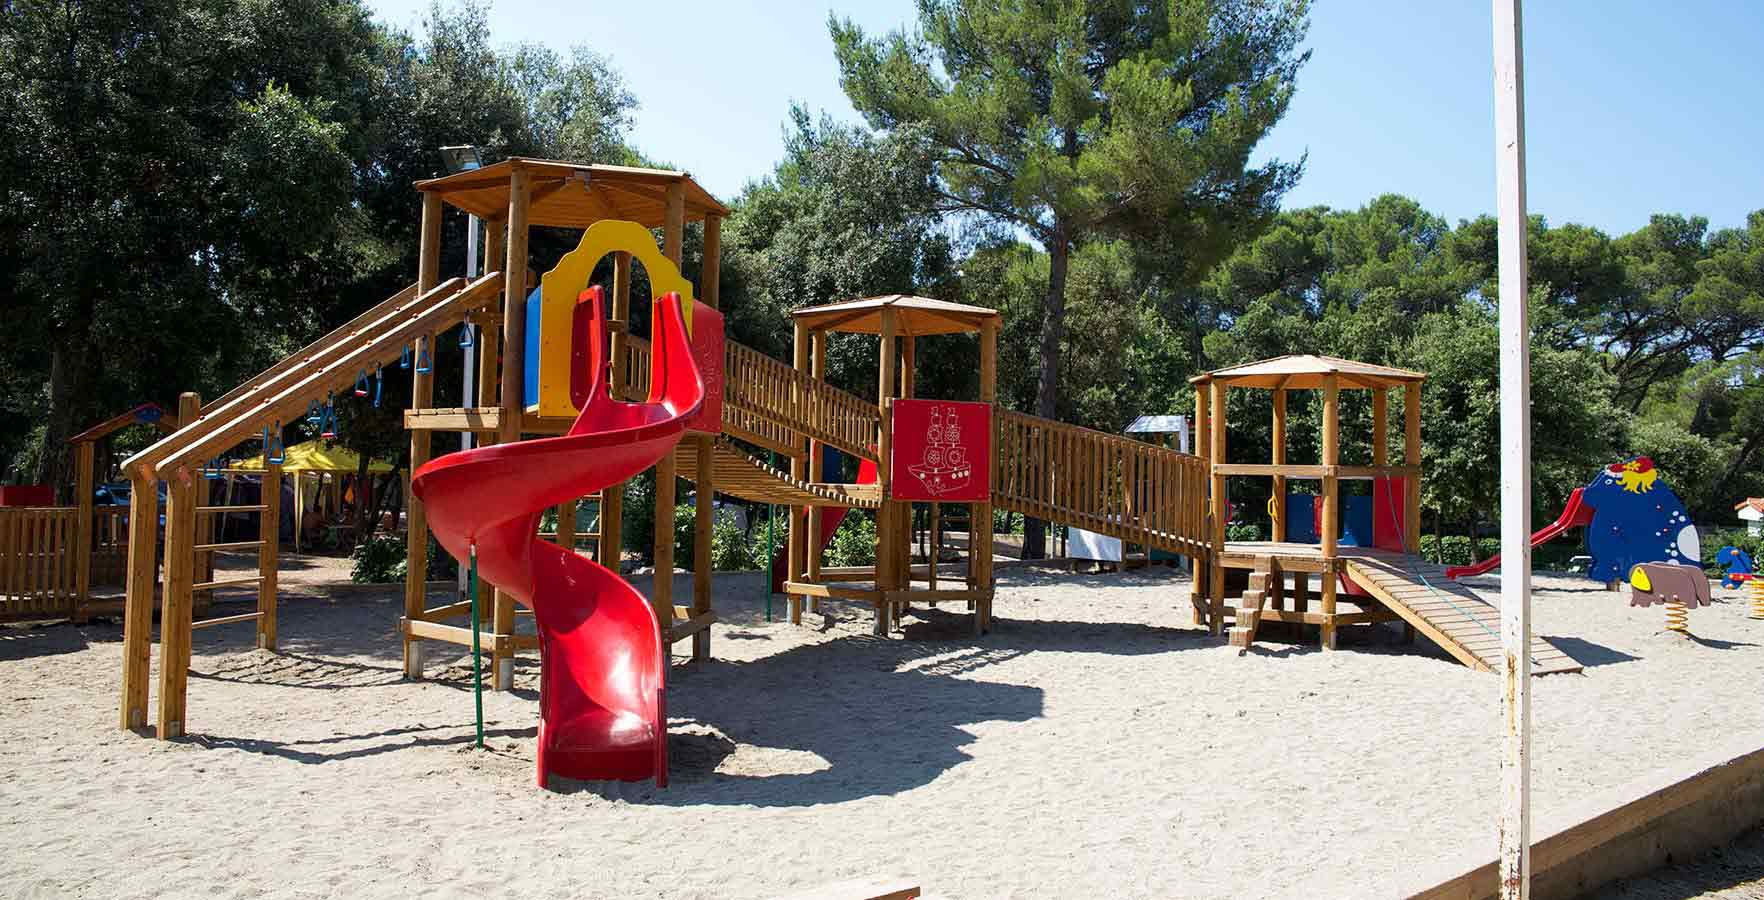 Campsite Park Soline - children playground